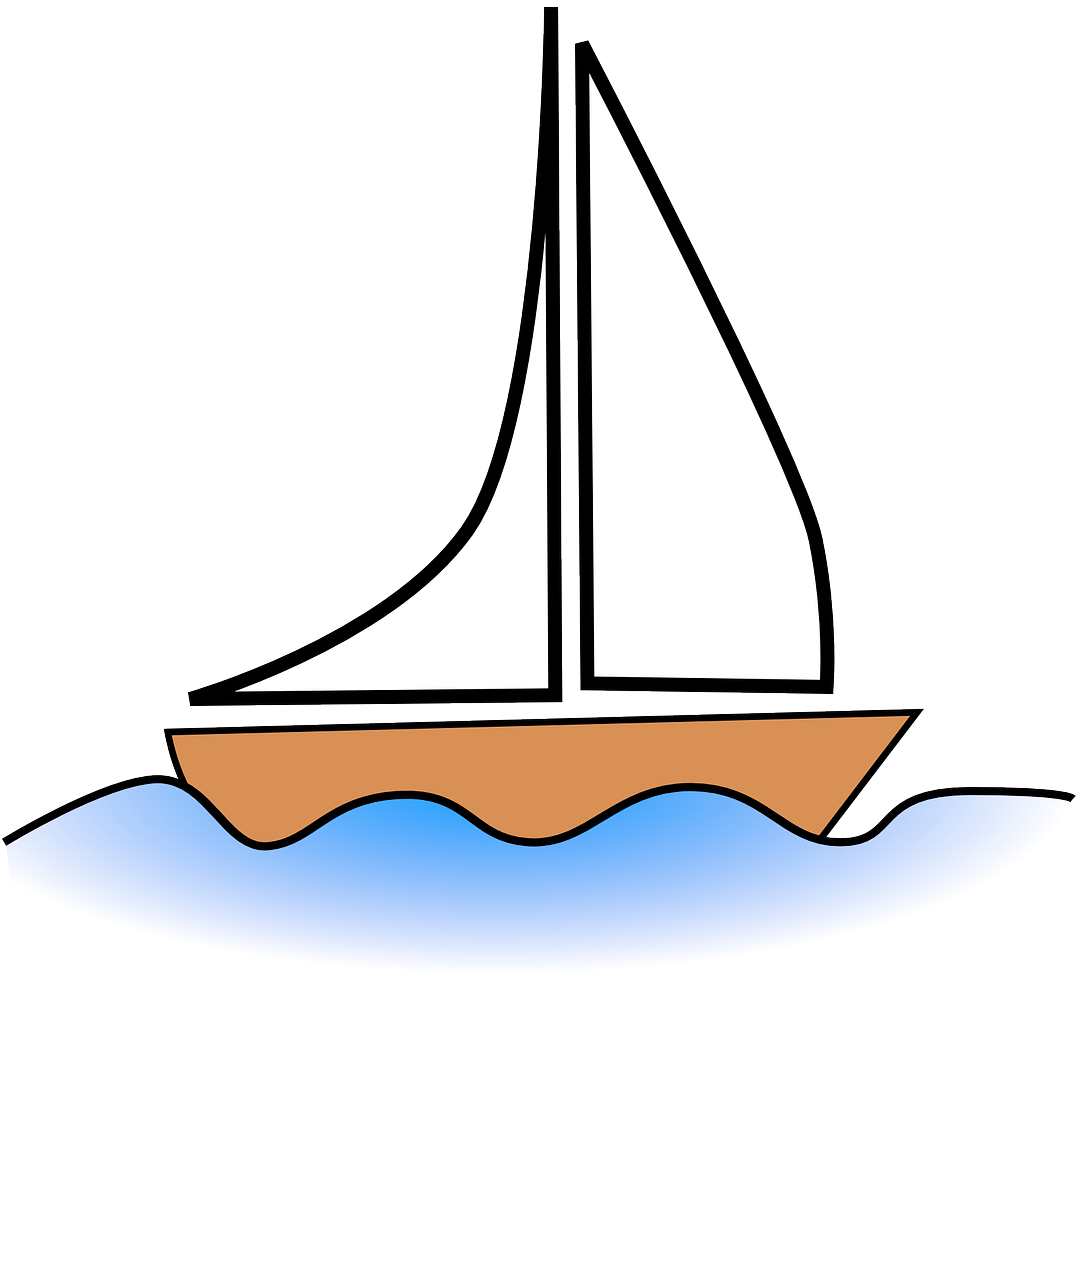 How to draw a boat 13